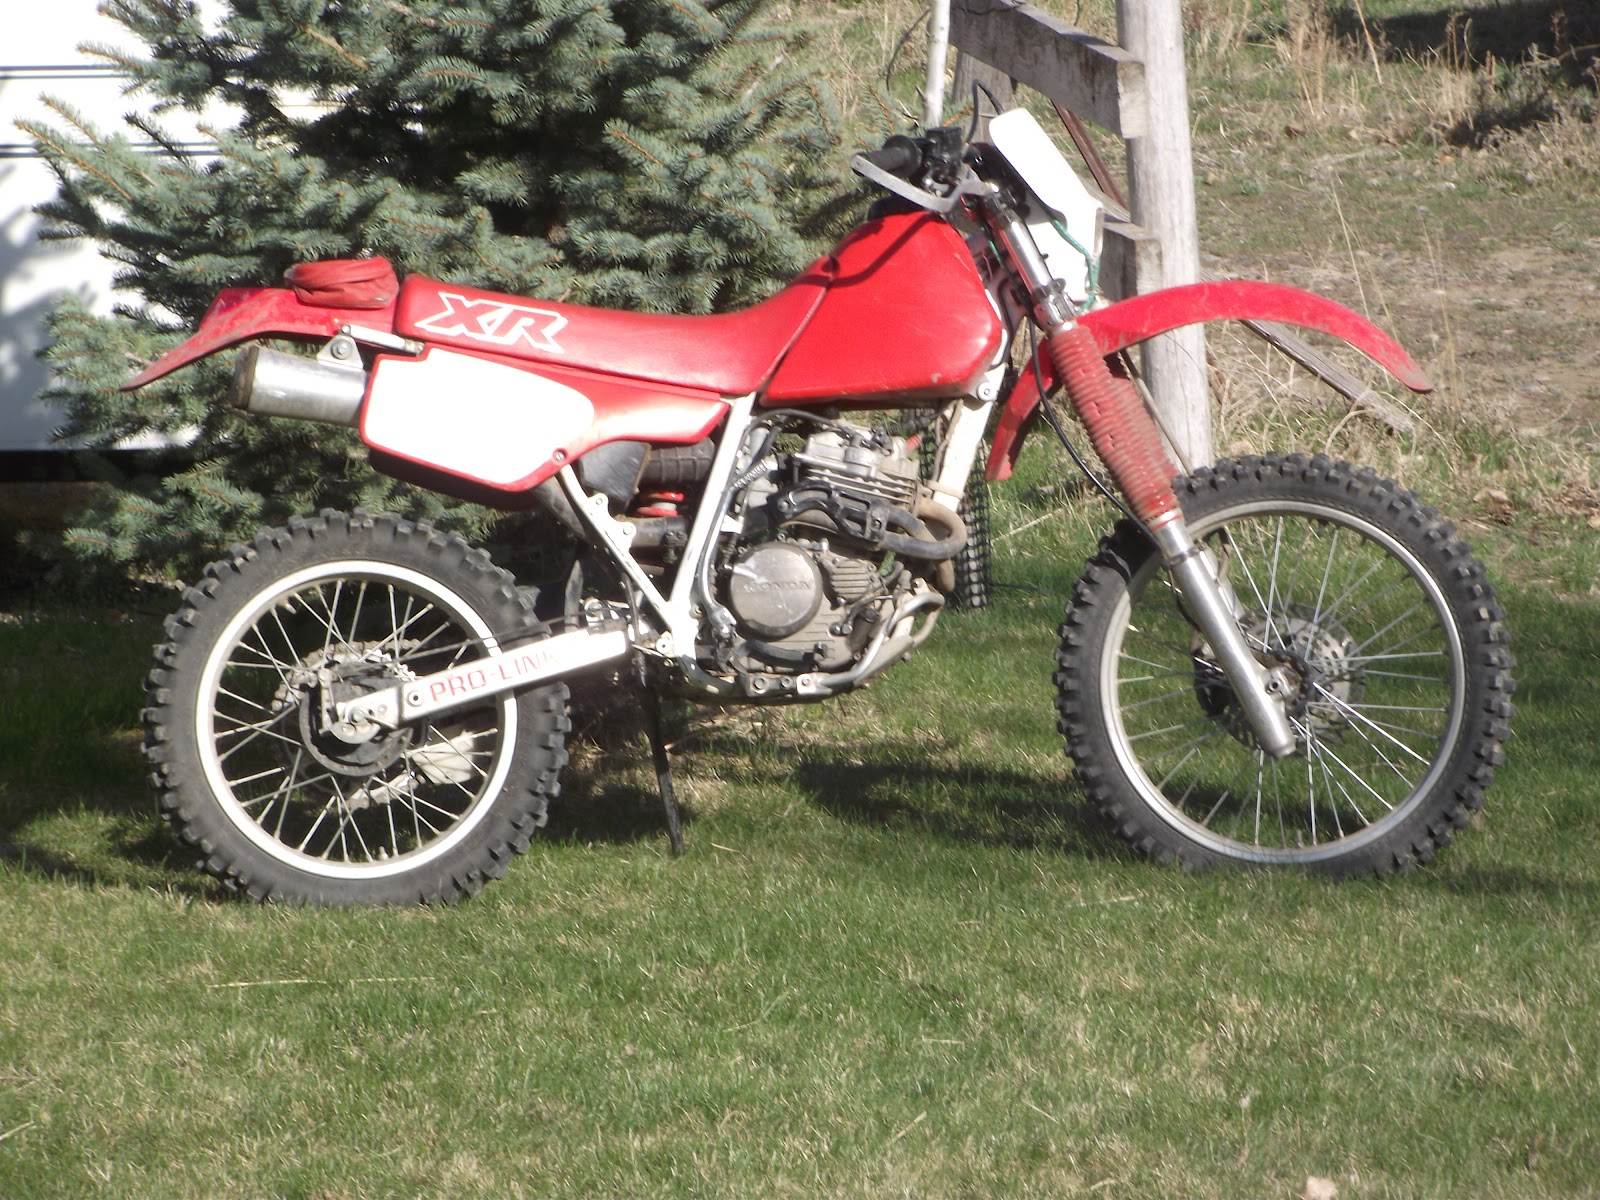 Quadro Amigos: 1989 XR250R review by Tanner